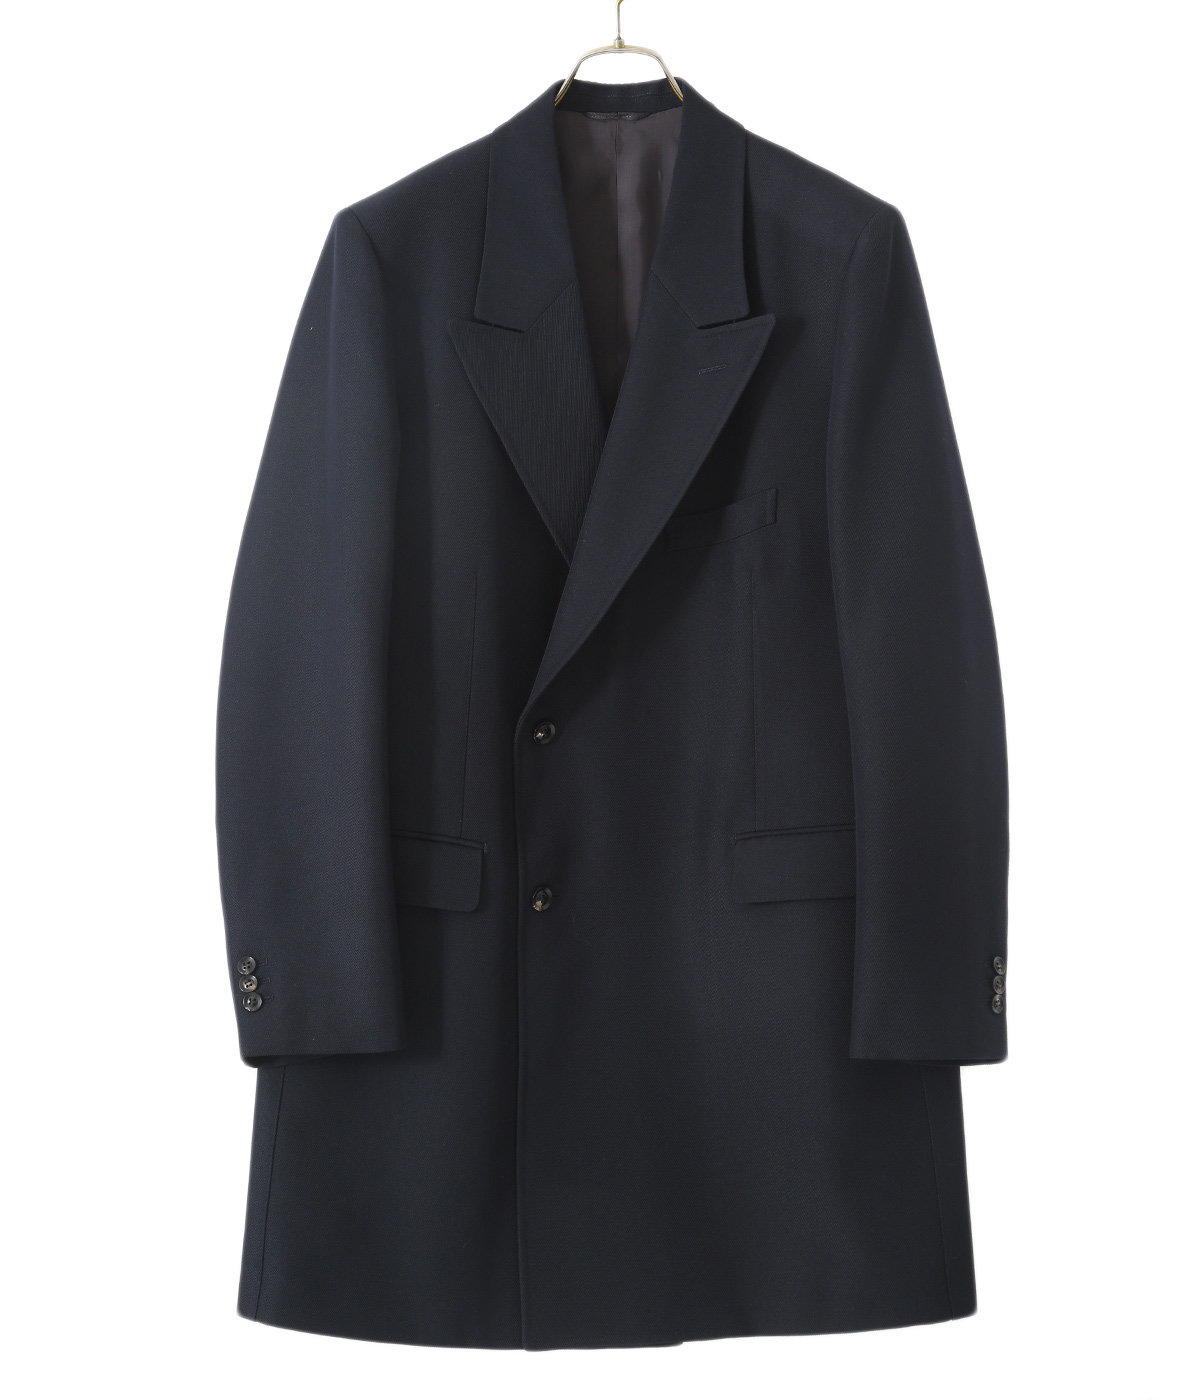 Pe/W HAND-PAINTED LONG TAILORED JACKET